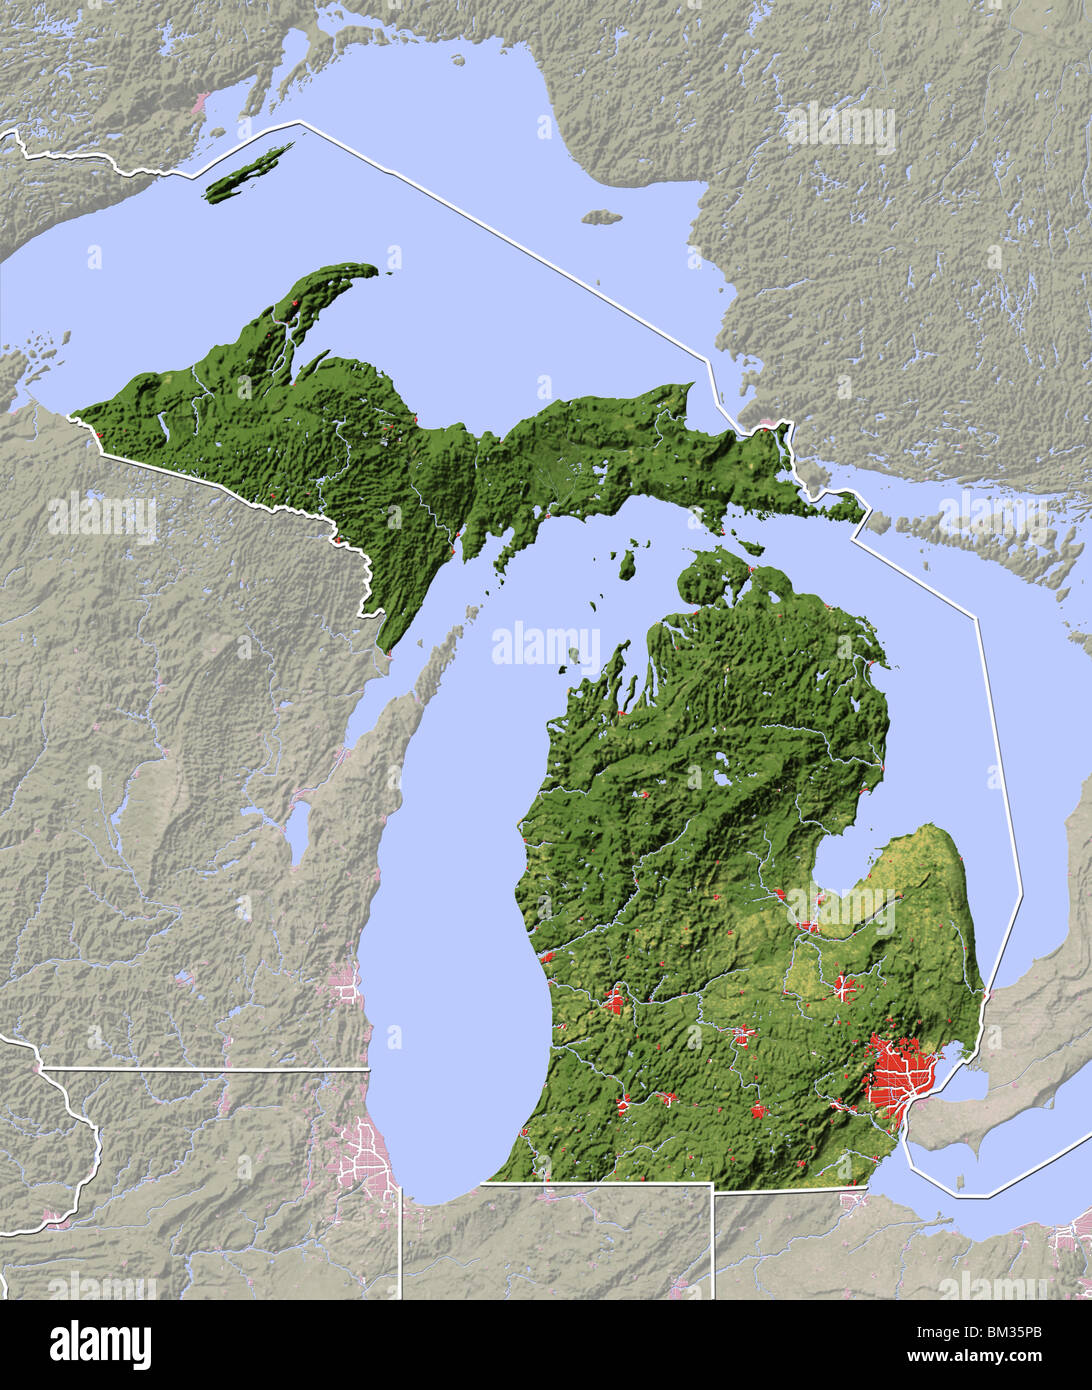 Michigan Shaded Relief Map Stock Photo Royalty Free Image - Physical map of michigan